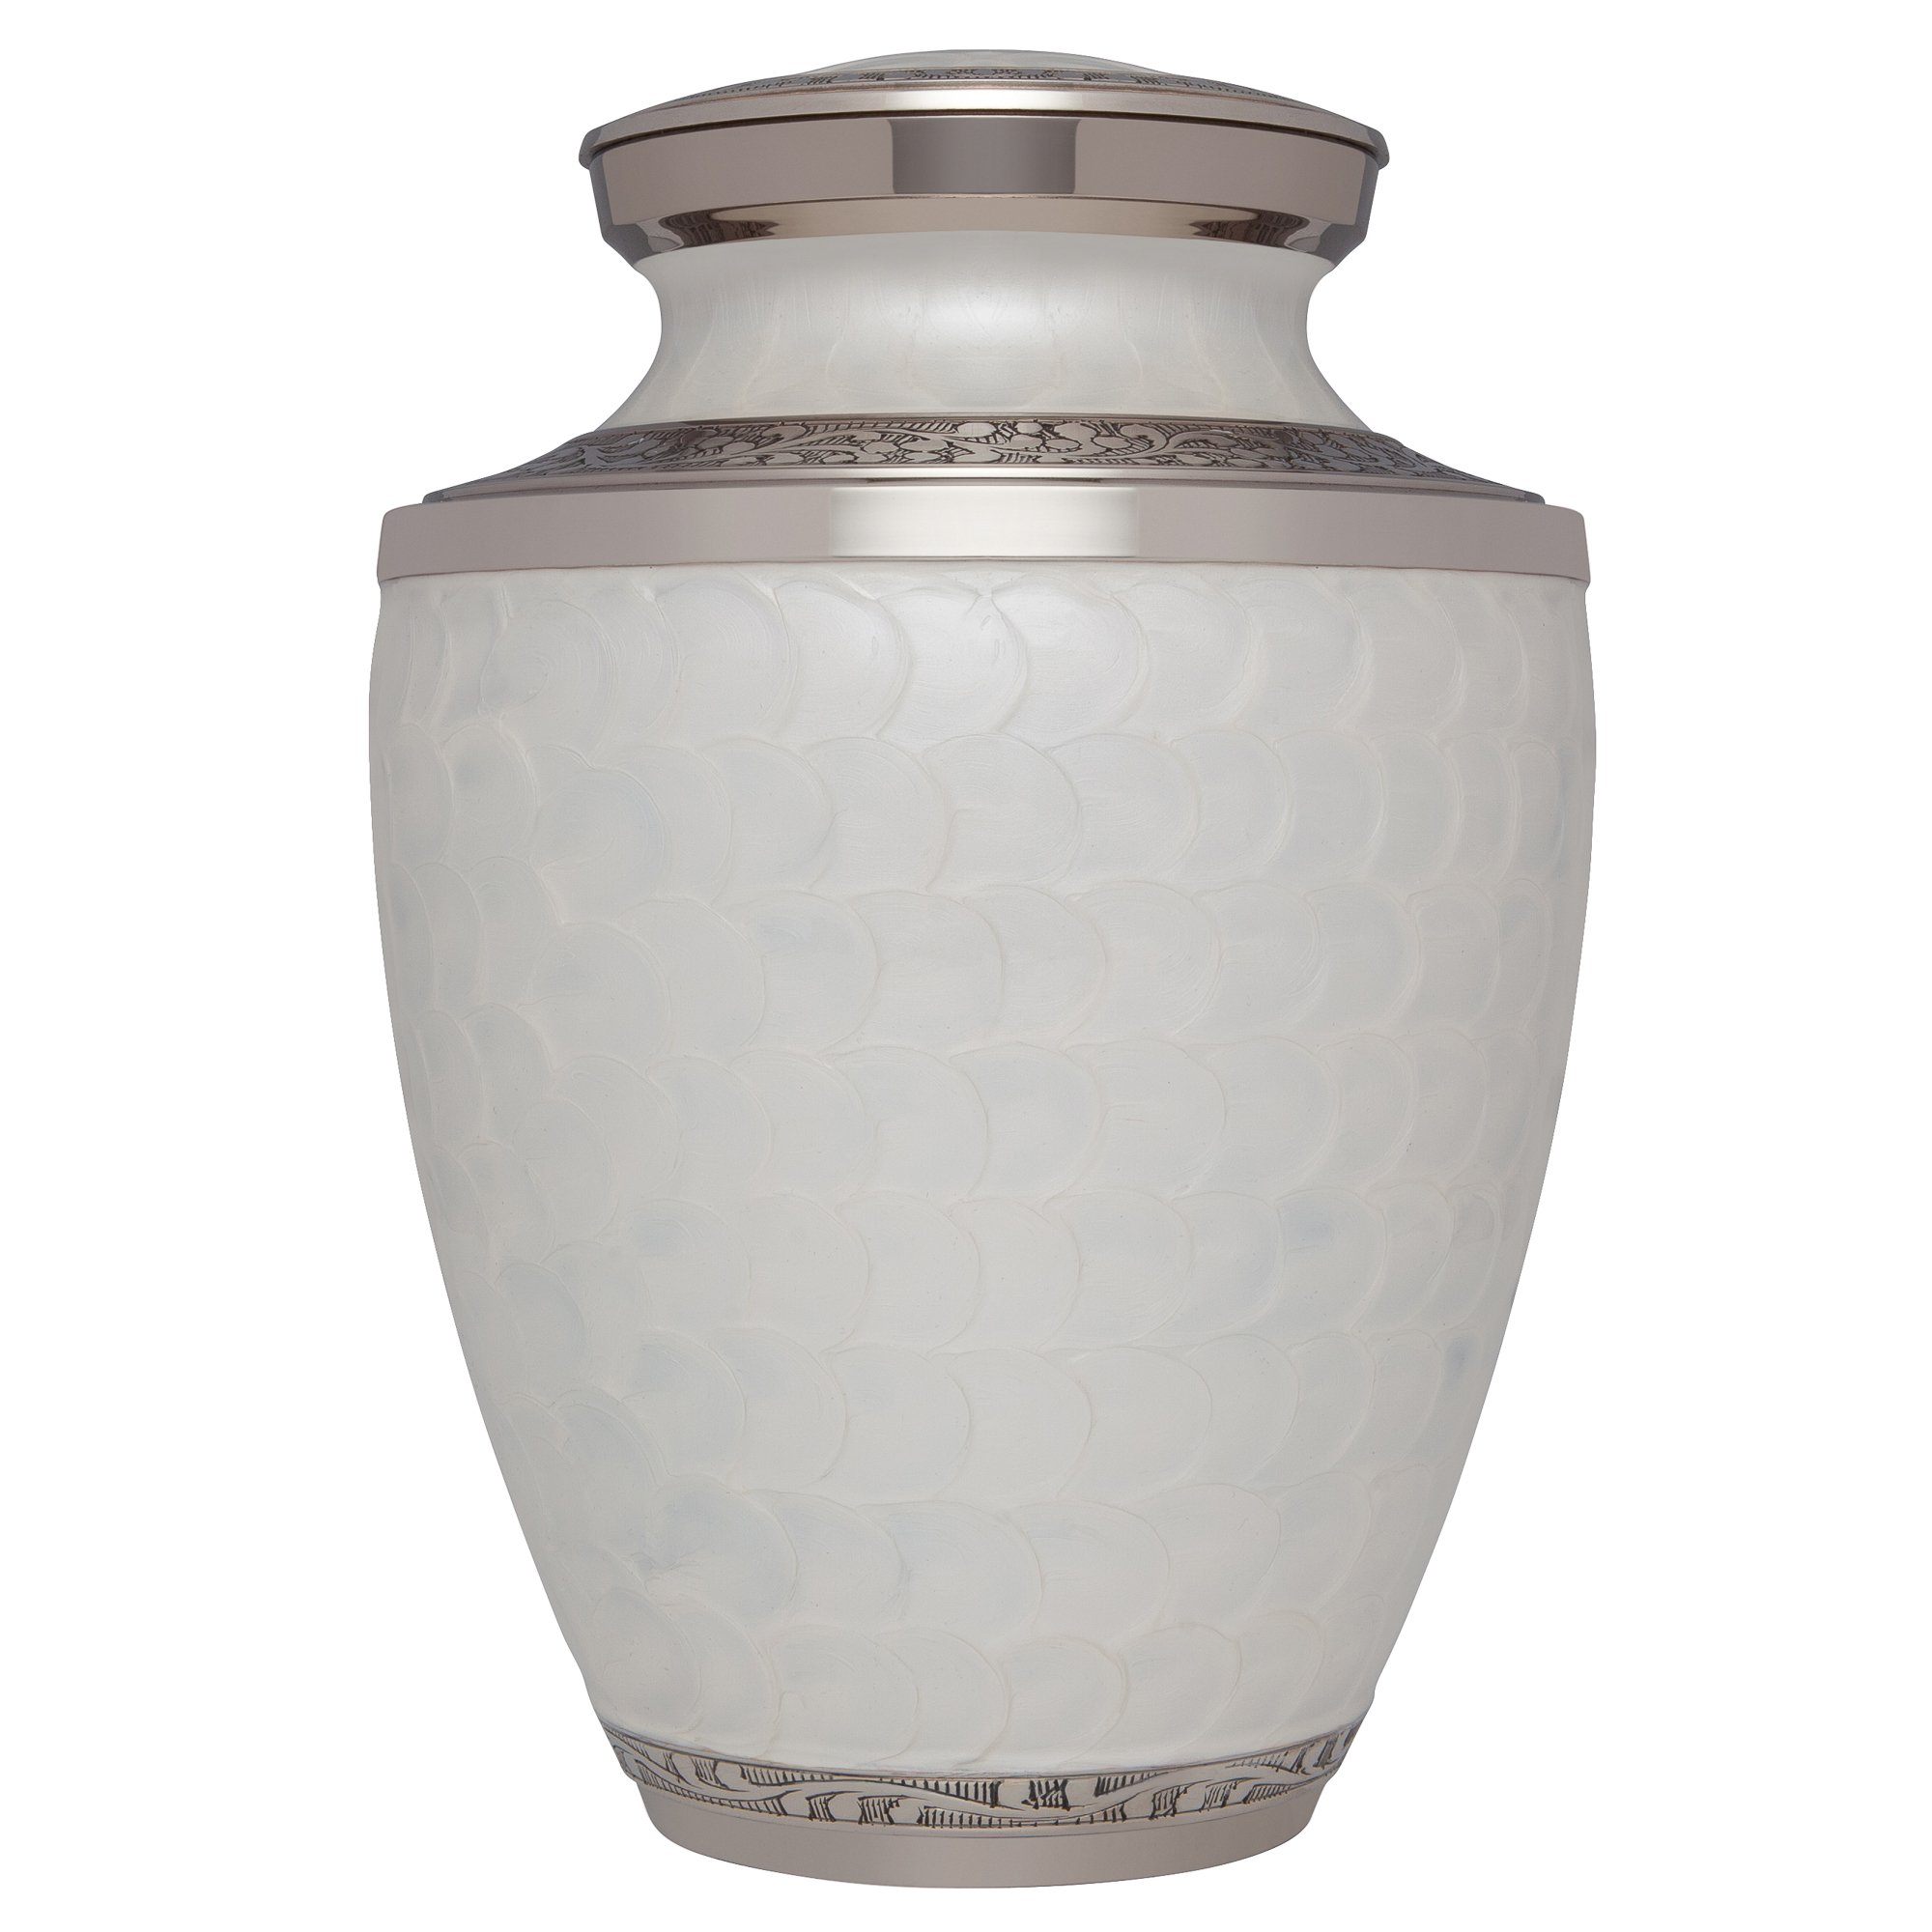 White Funeral Urn by Liliane Memorials - Cremation Urn for Human Ashes - Hand Made in Brass - Suitable for Cemetery Burial or Niche- Large Size fits remains of Adults up to 200 lbs- Petals White Model